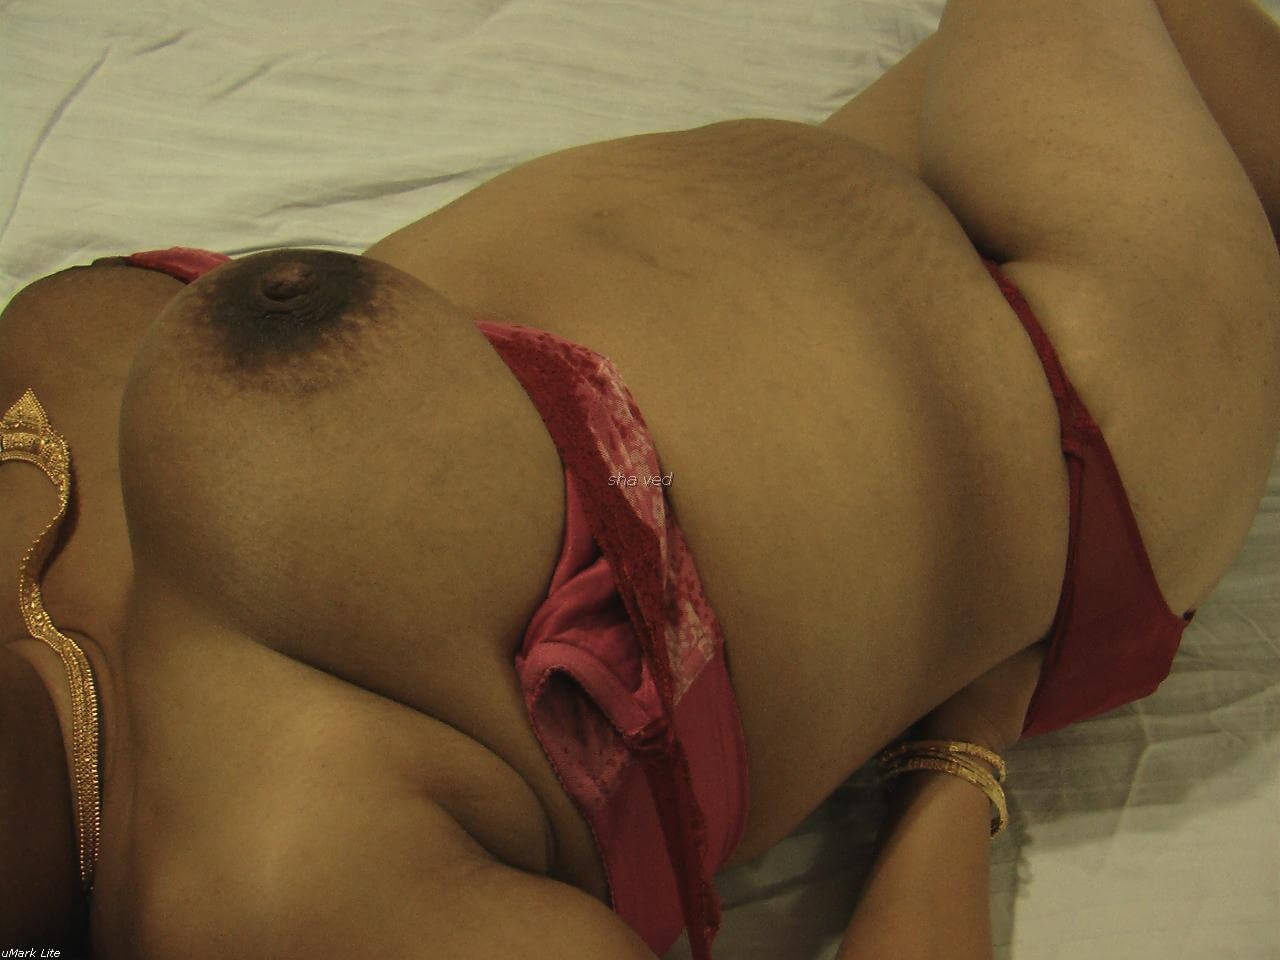 Stuff boobs indian aunty images 1:41, seeing